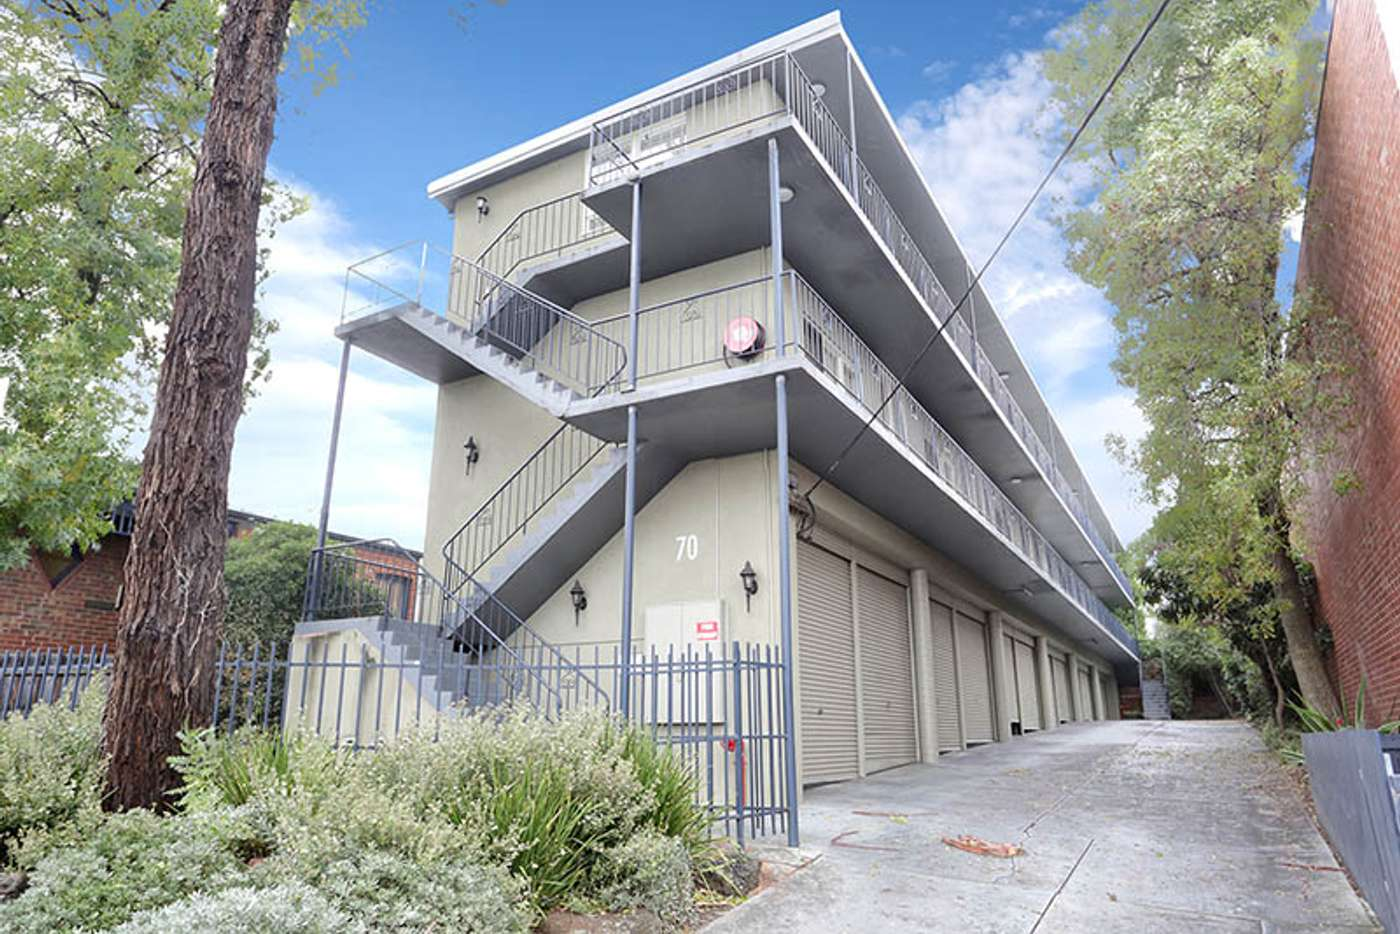 Main view of Homely apartment listing, 5/70 Lyndhurst Street, Richmond VIC 3121